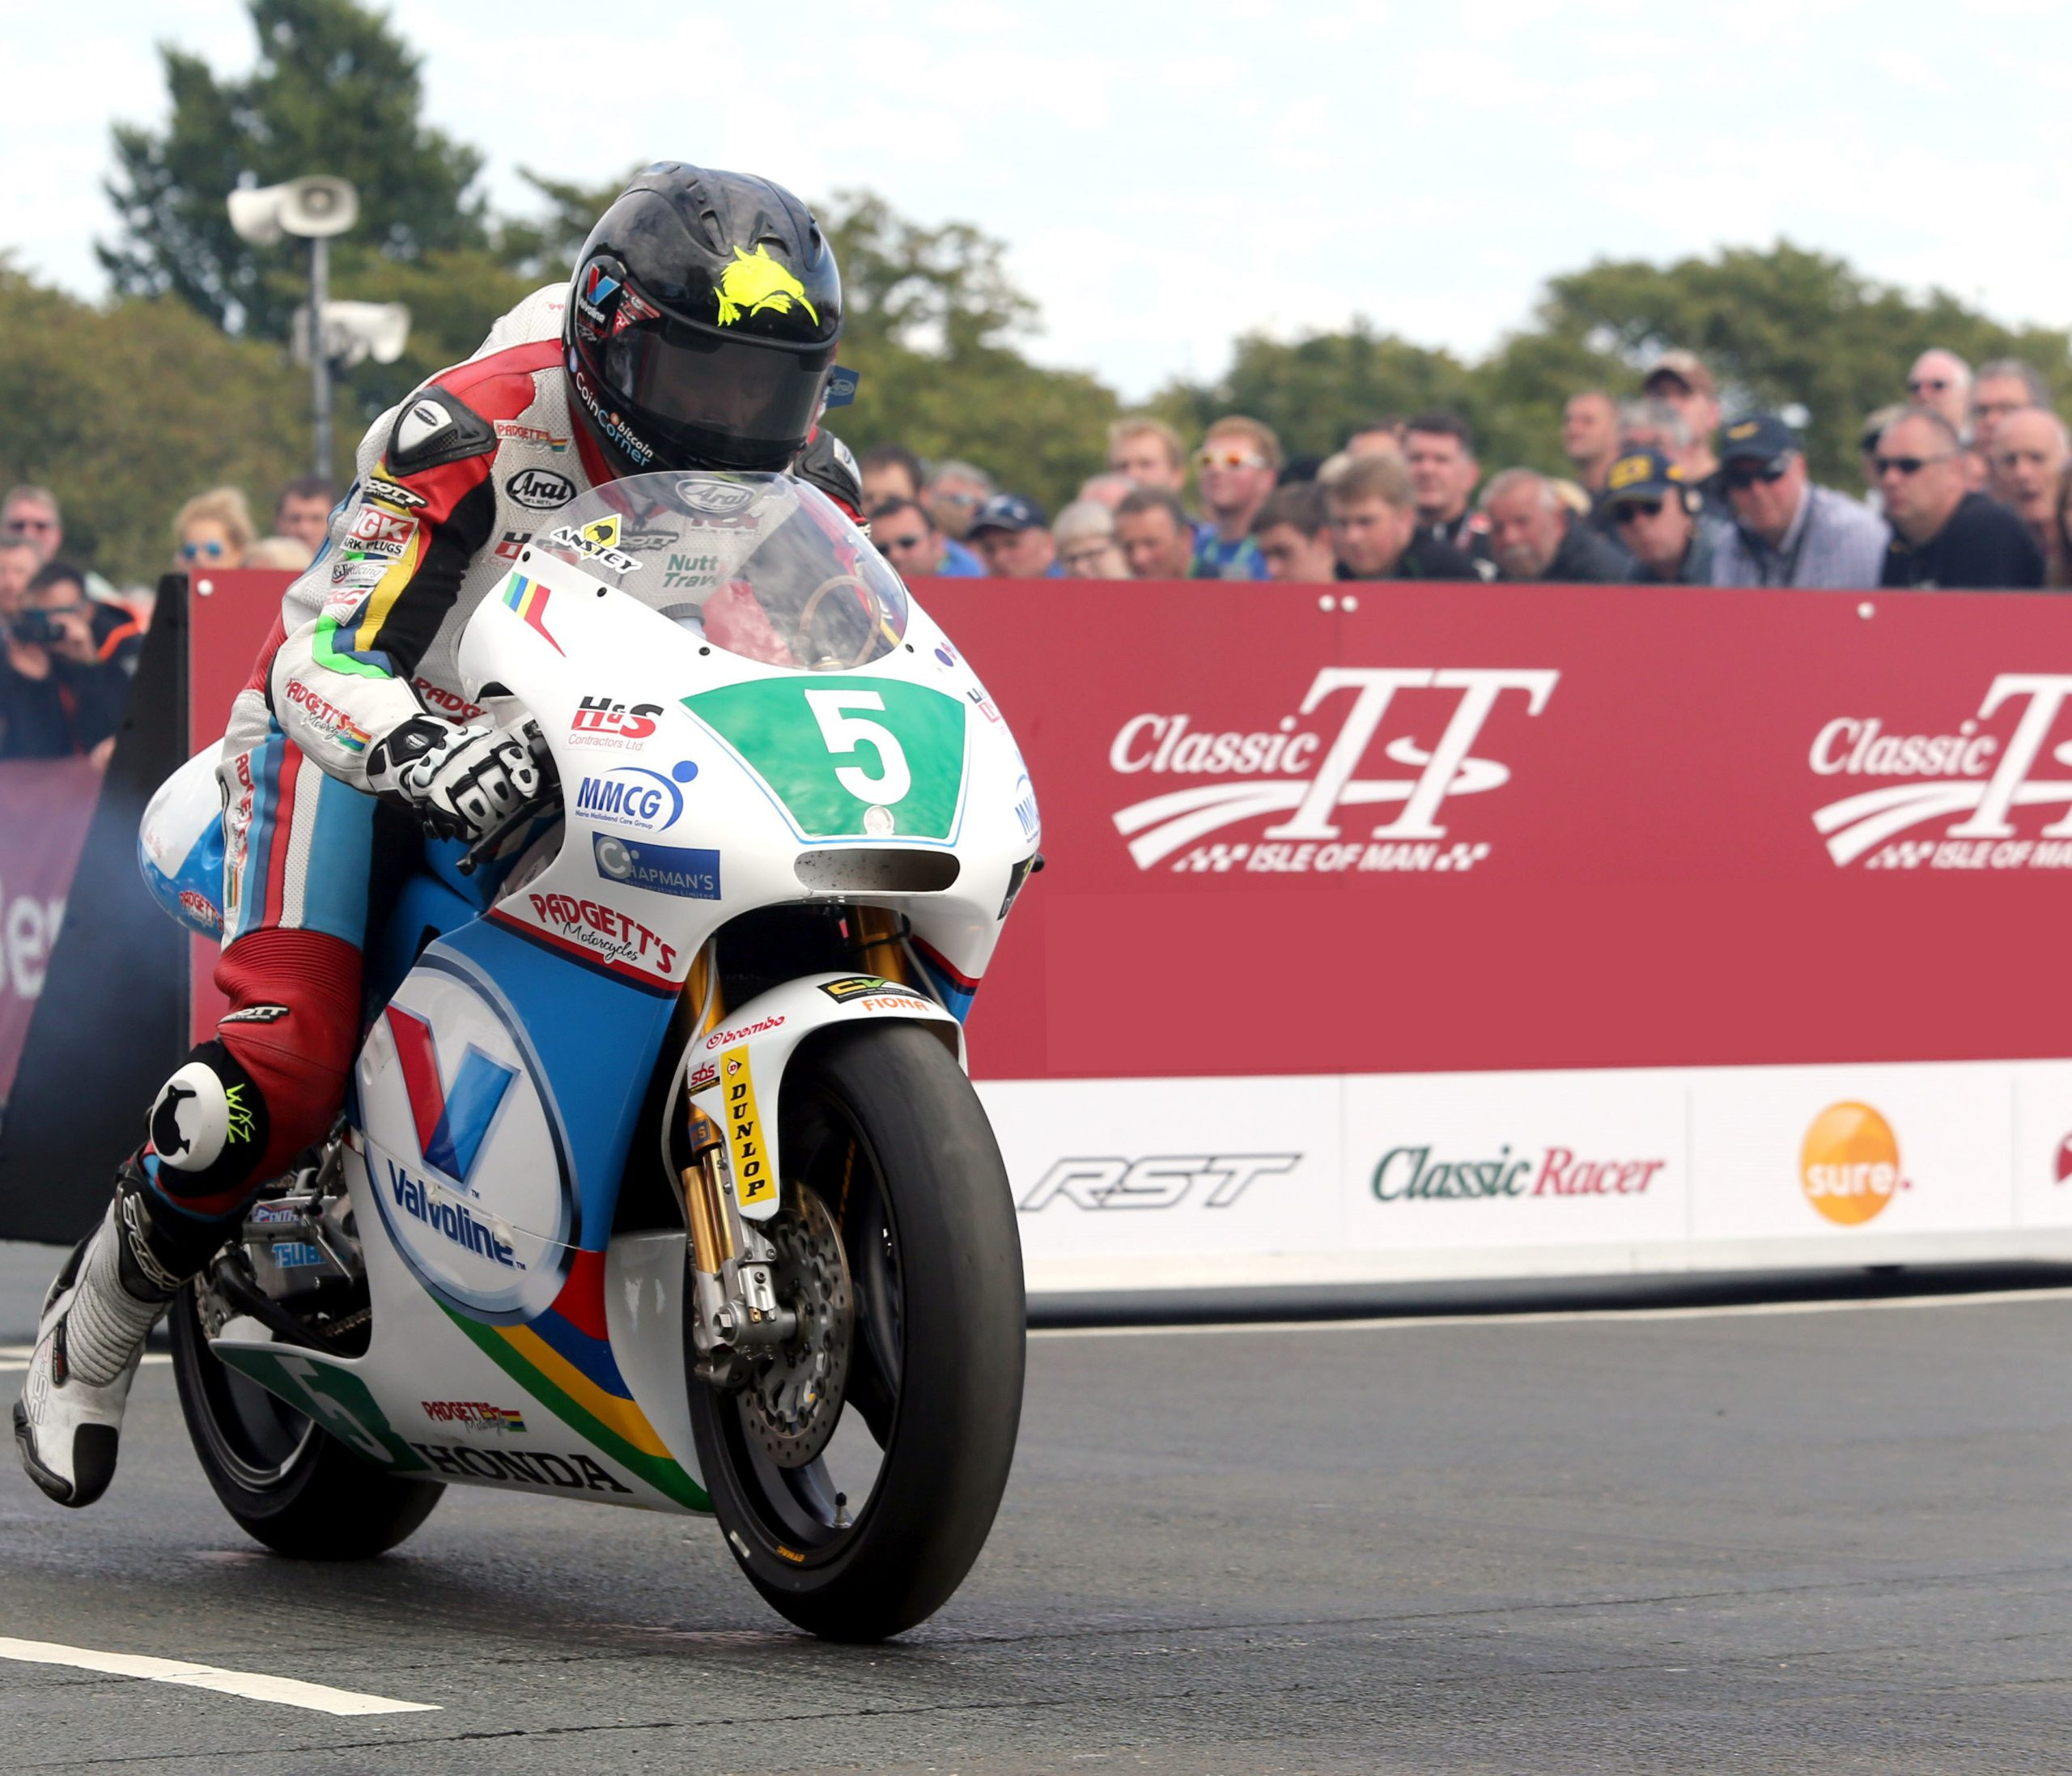 Bruce Anstey image credit Stephen Davison Pacemaker Press International